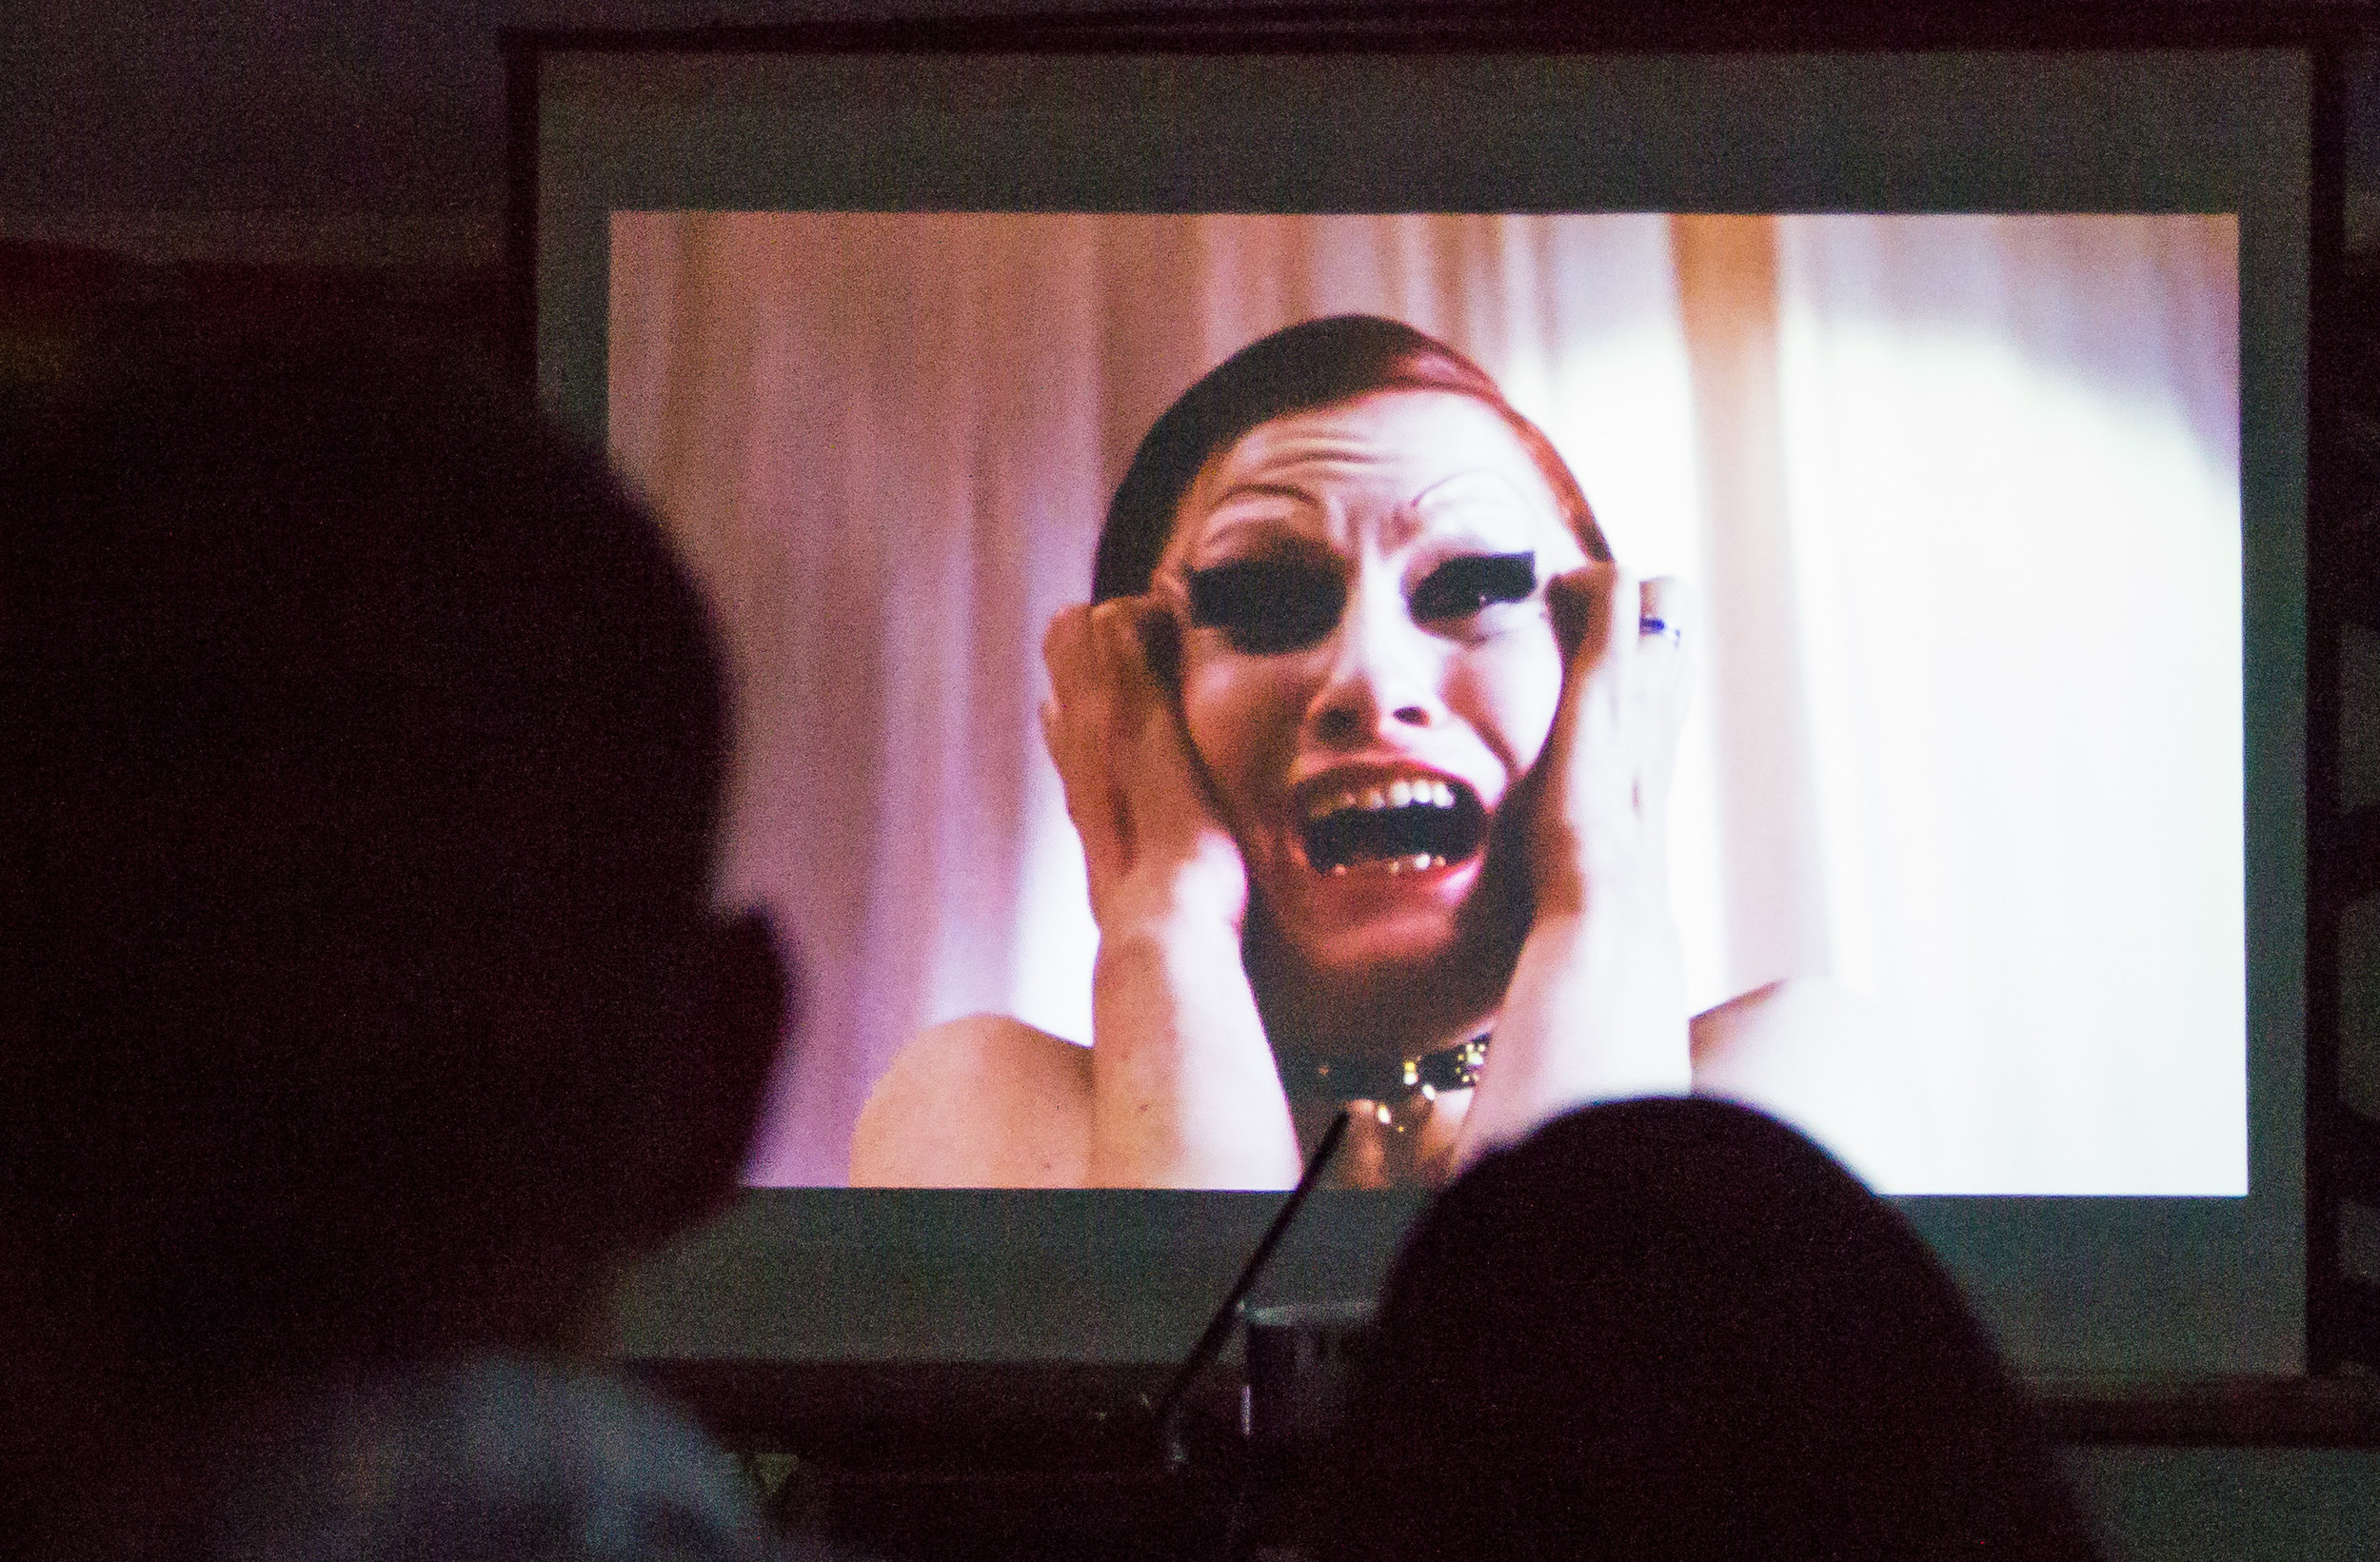 Santa Monica College students watch the Rock Horror Picture Show in the Cayton Center put on by the Associated Students in honor of Pride week on Wednesday, May 24, 2017 in Santa Monica College.